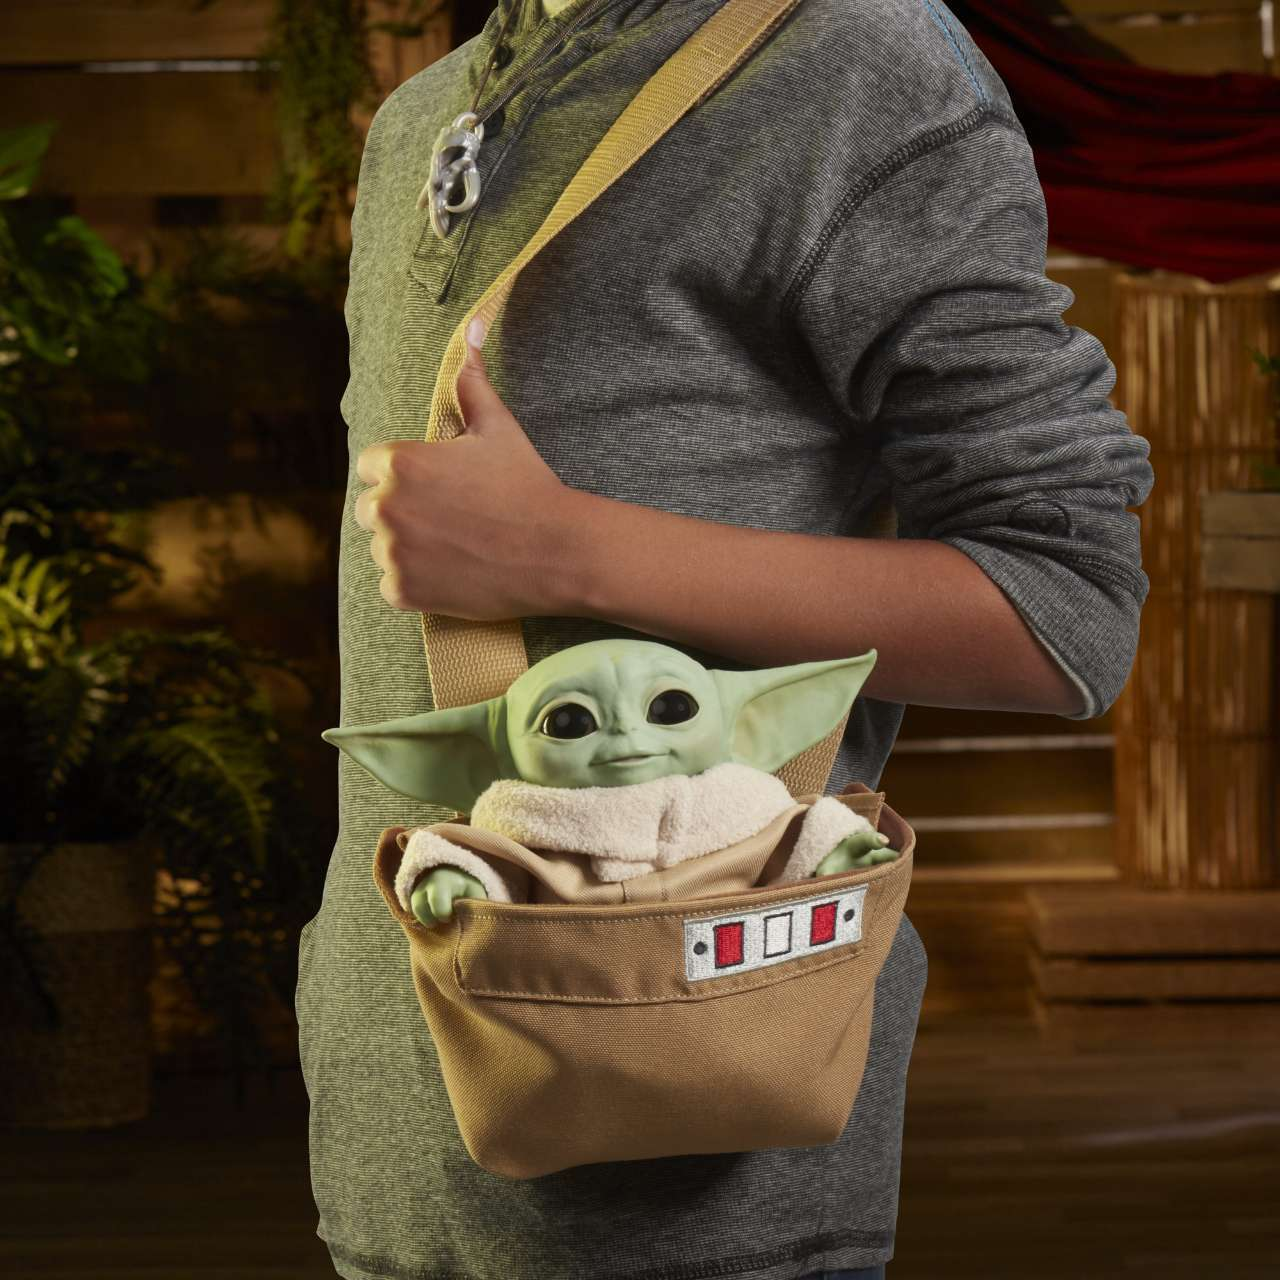 Remote-Controlled Baby Yoda Plush Is the Star of Mando Monday